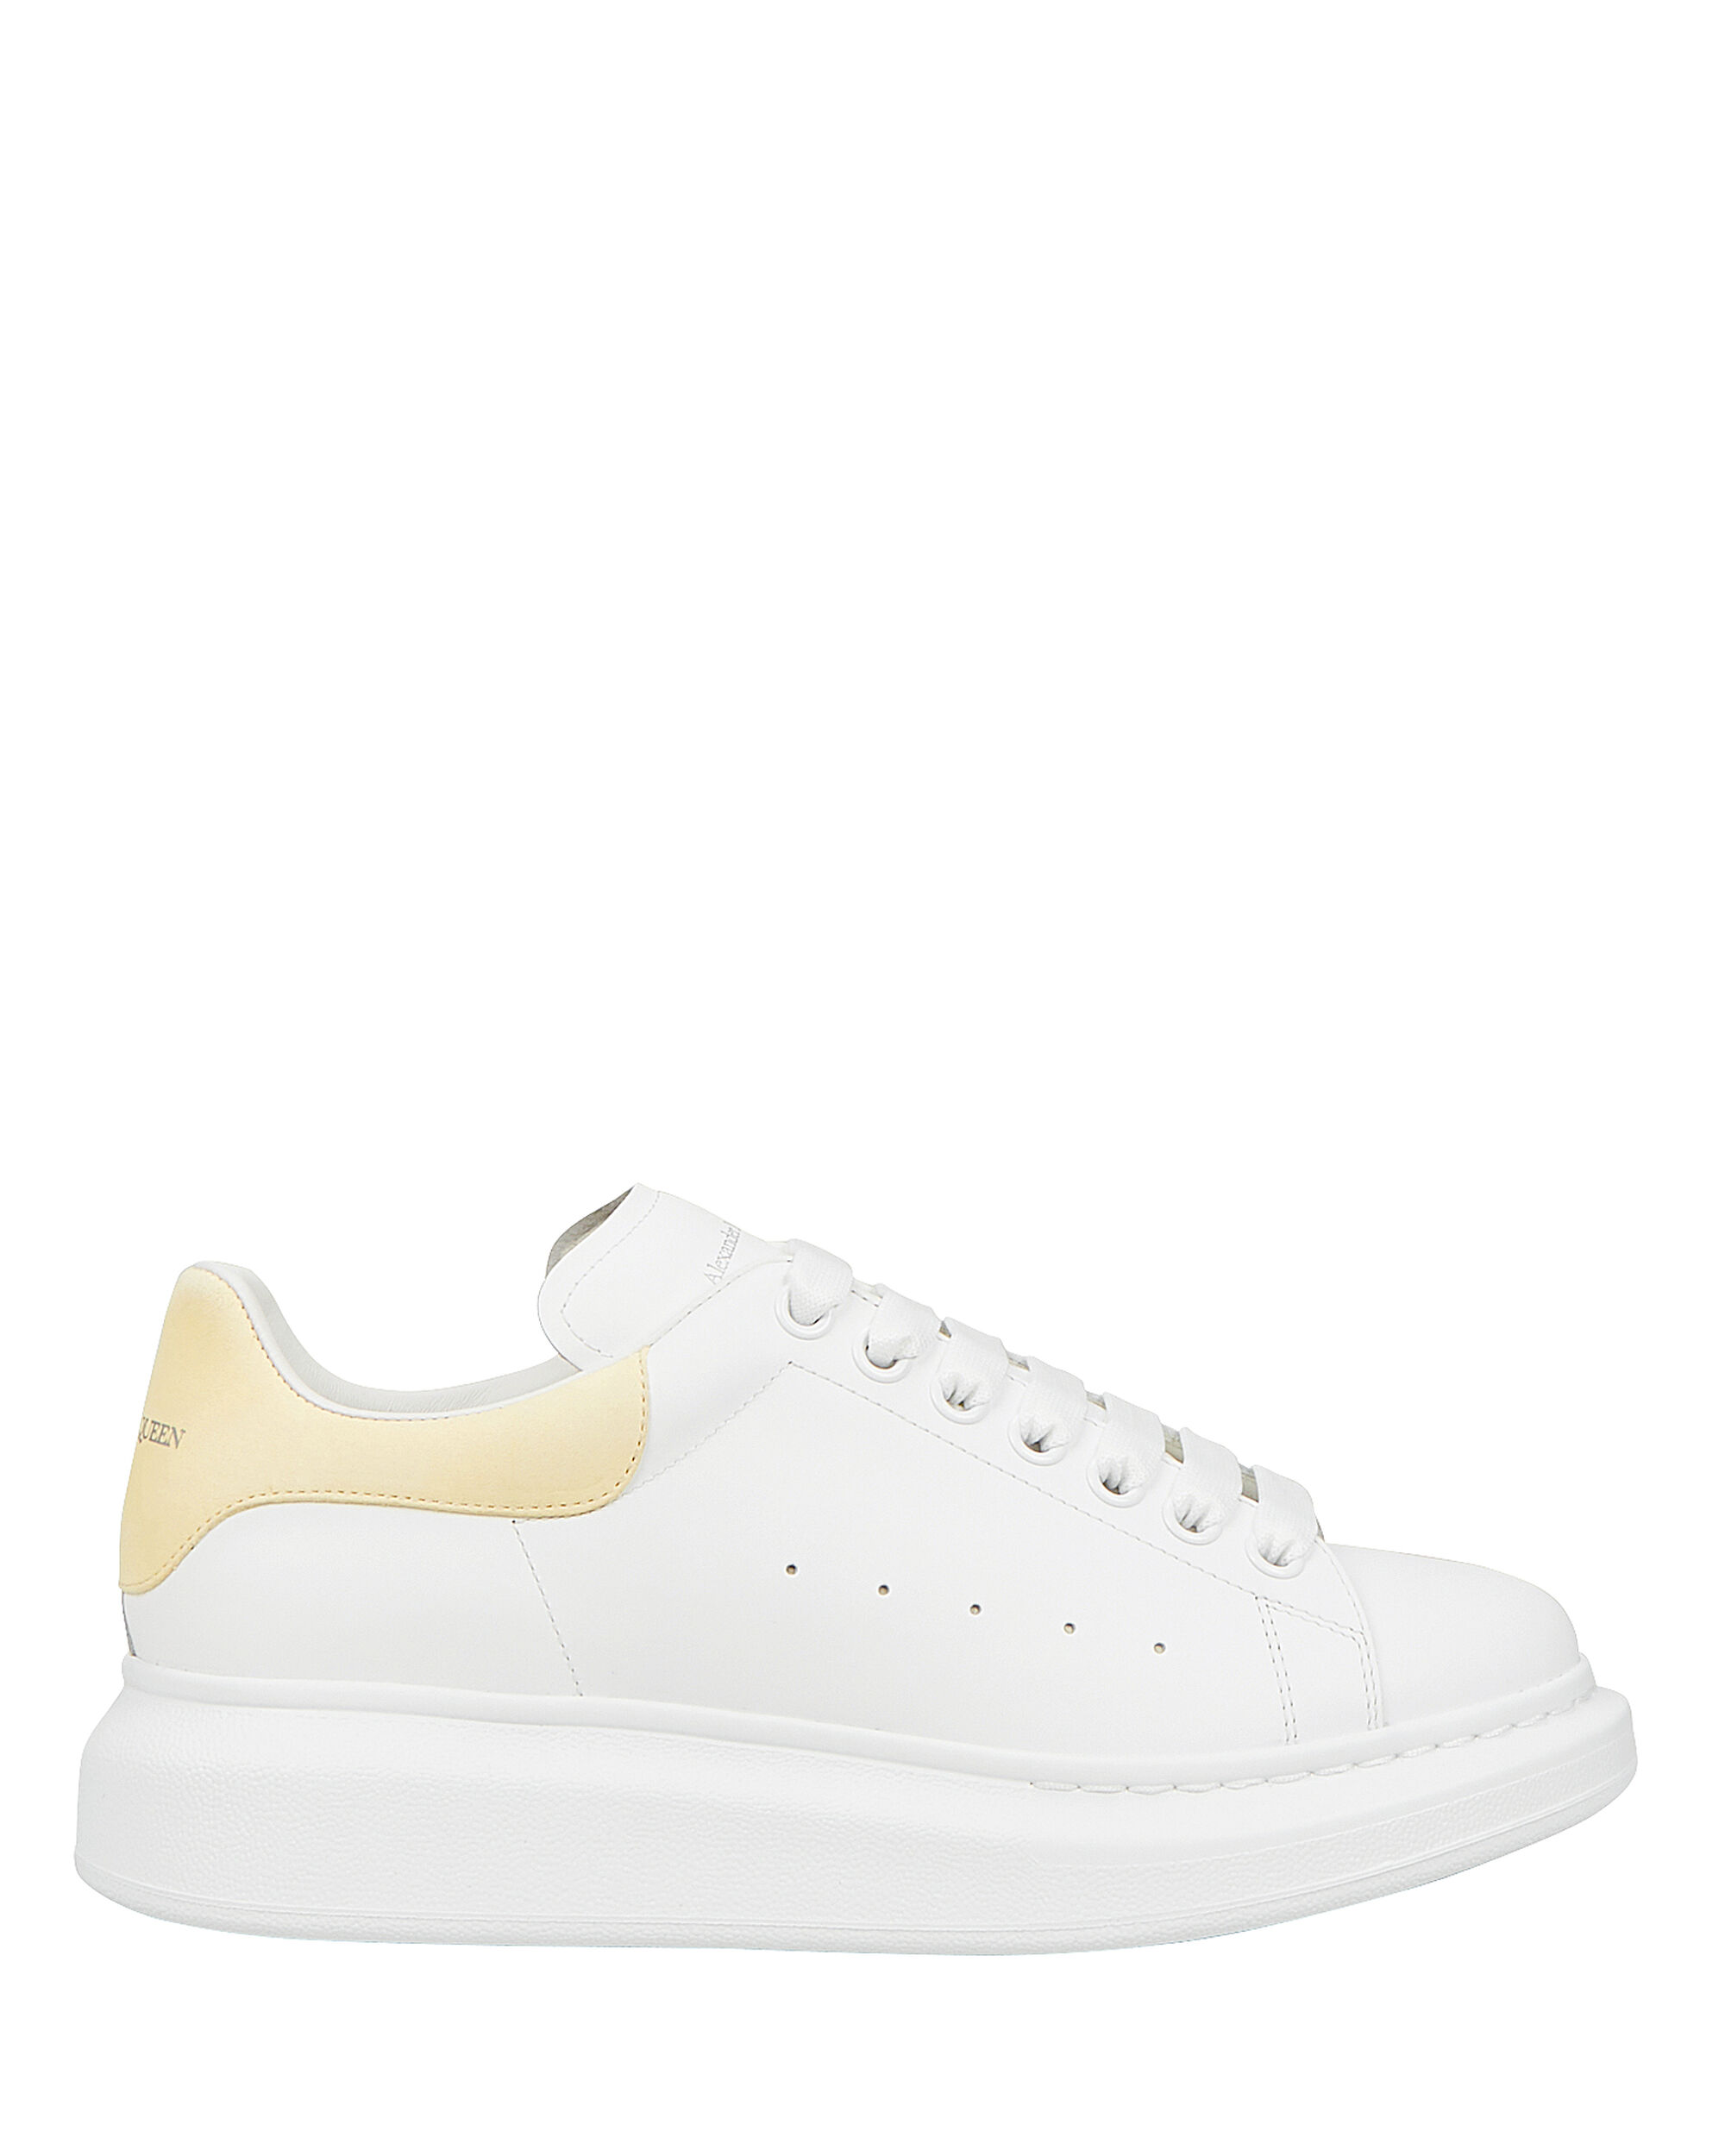 Oversized Leather Sneakers, WHITE/YELLOW, hi-res